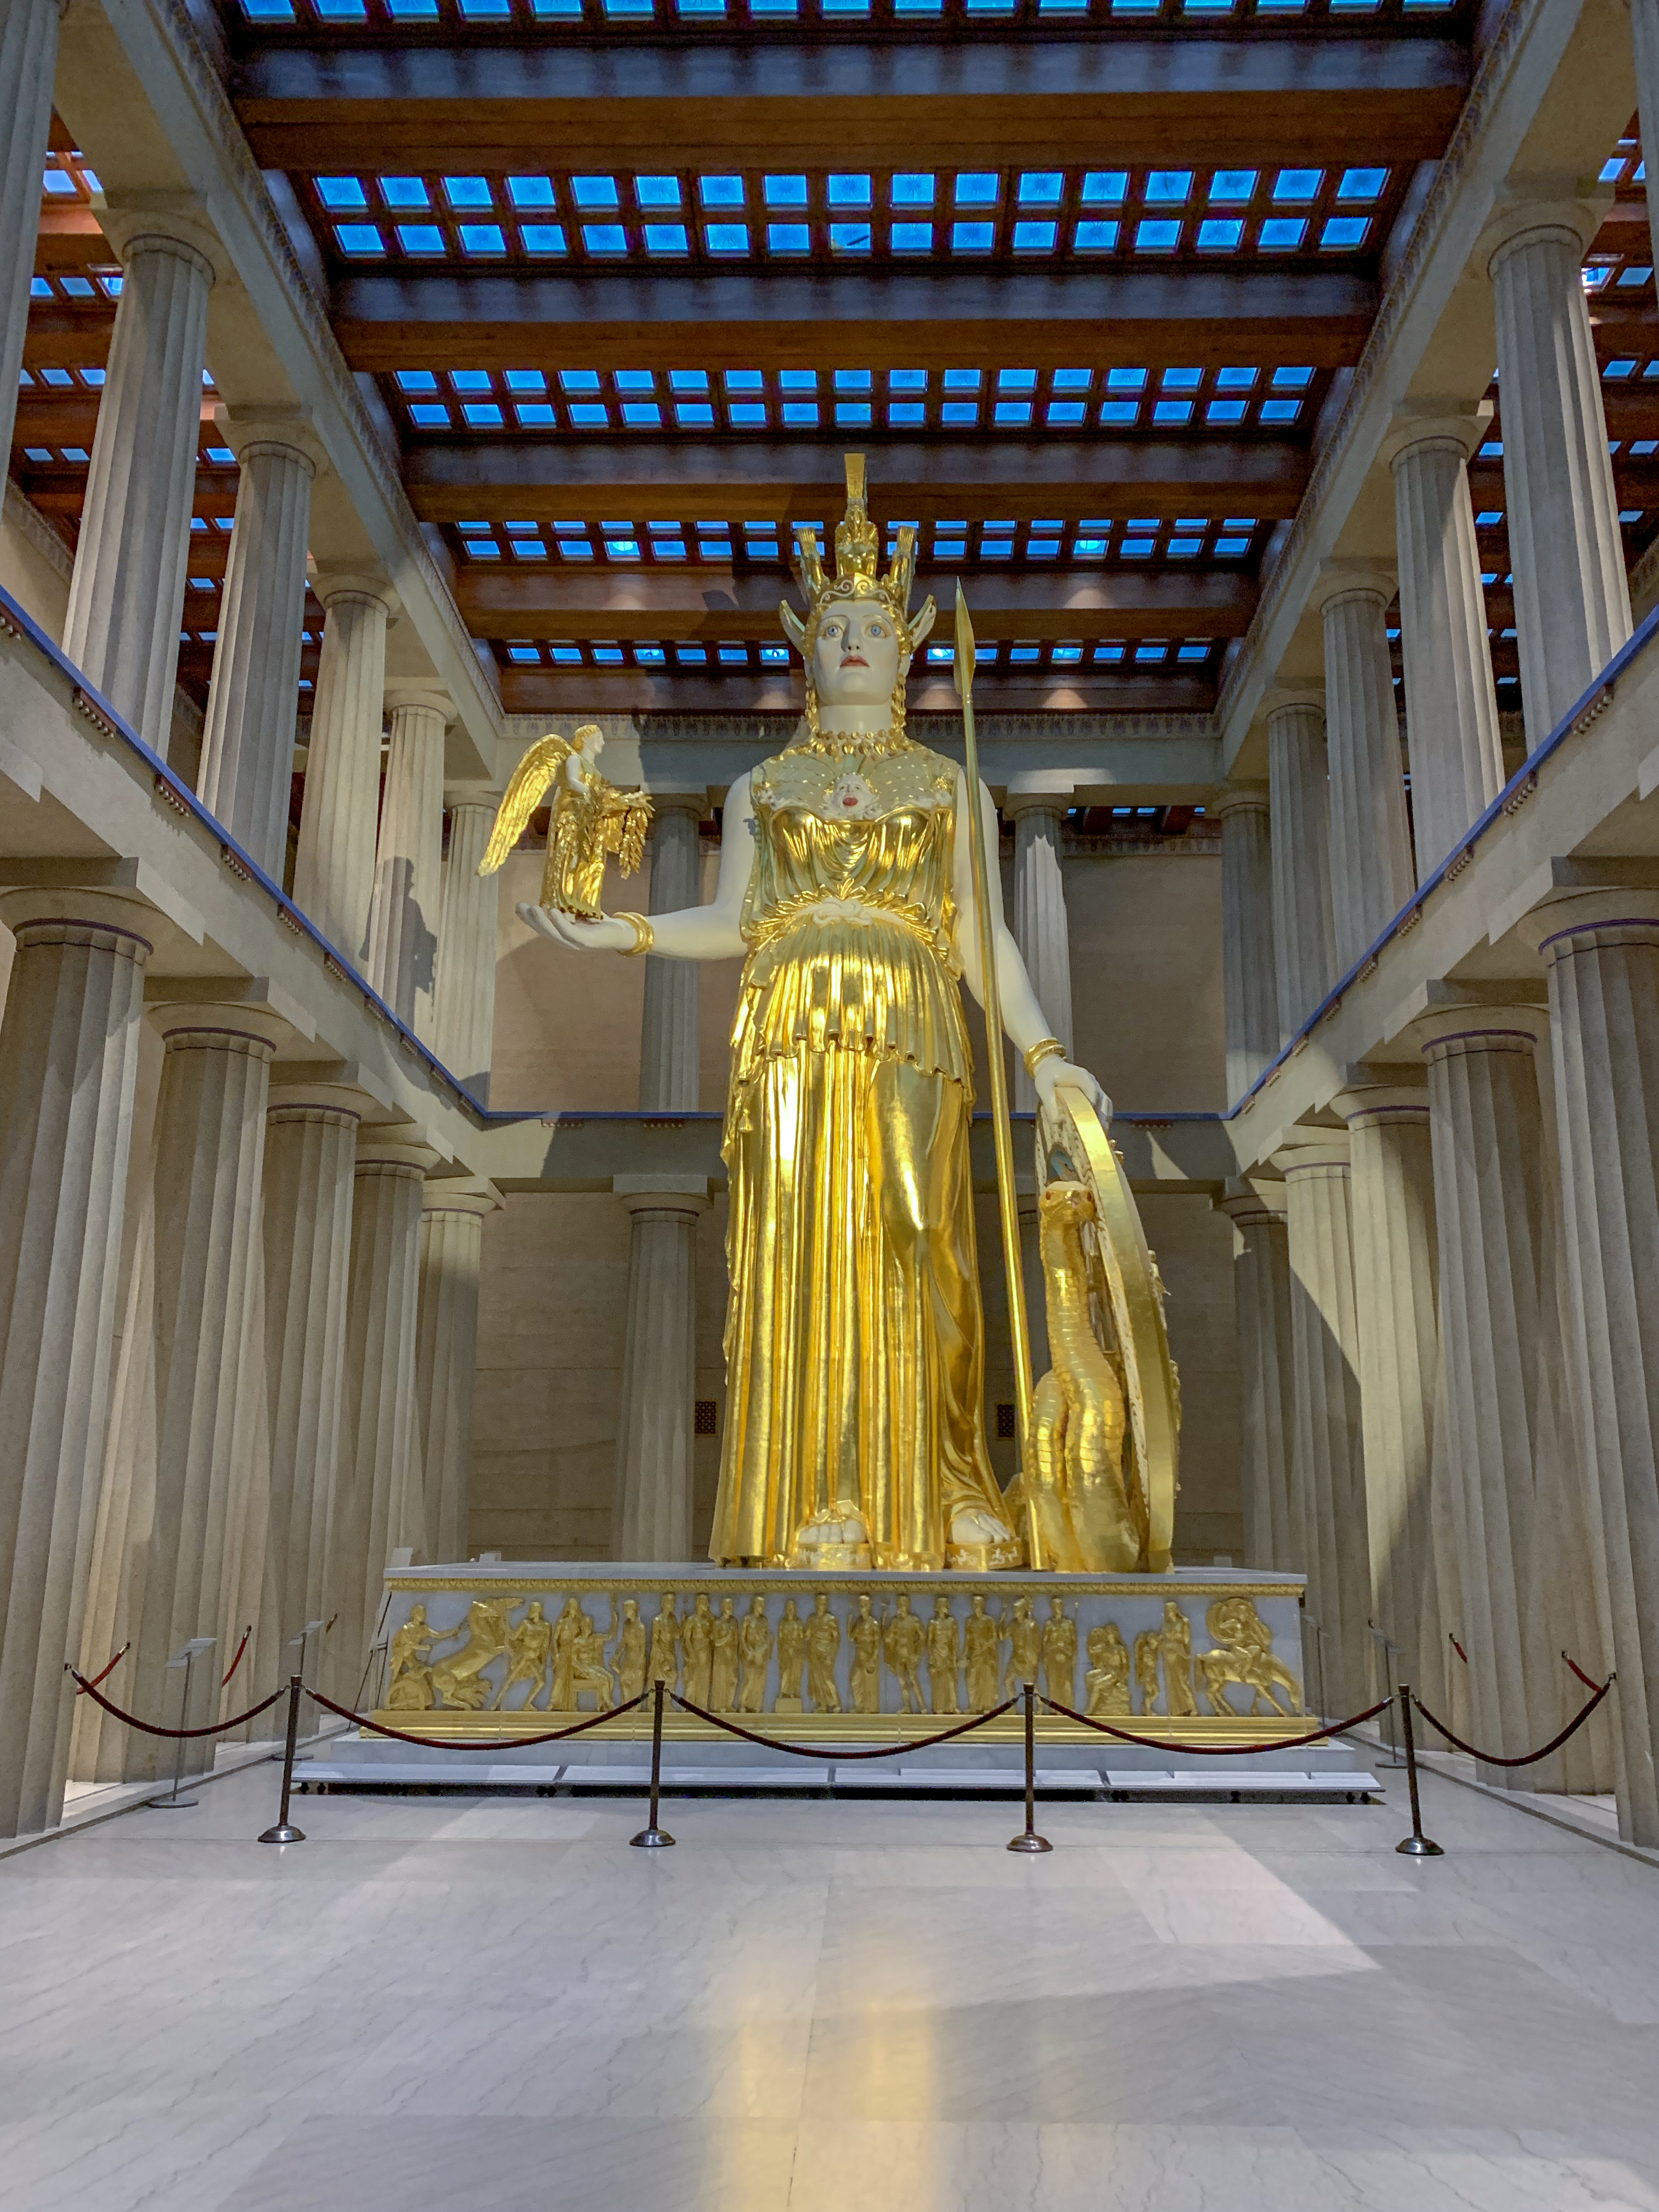 A statue of Athena at The Parthenon in Nashville, Tennessee.